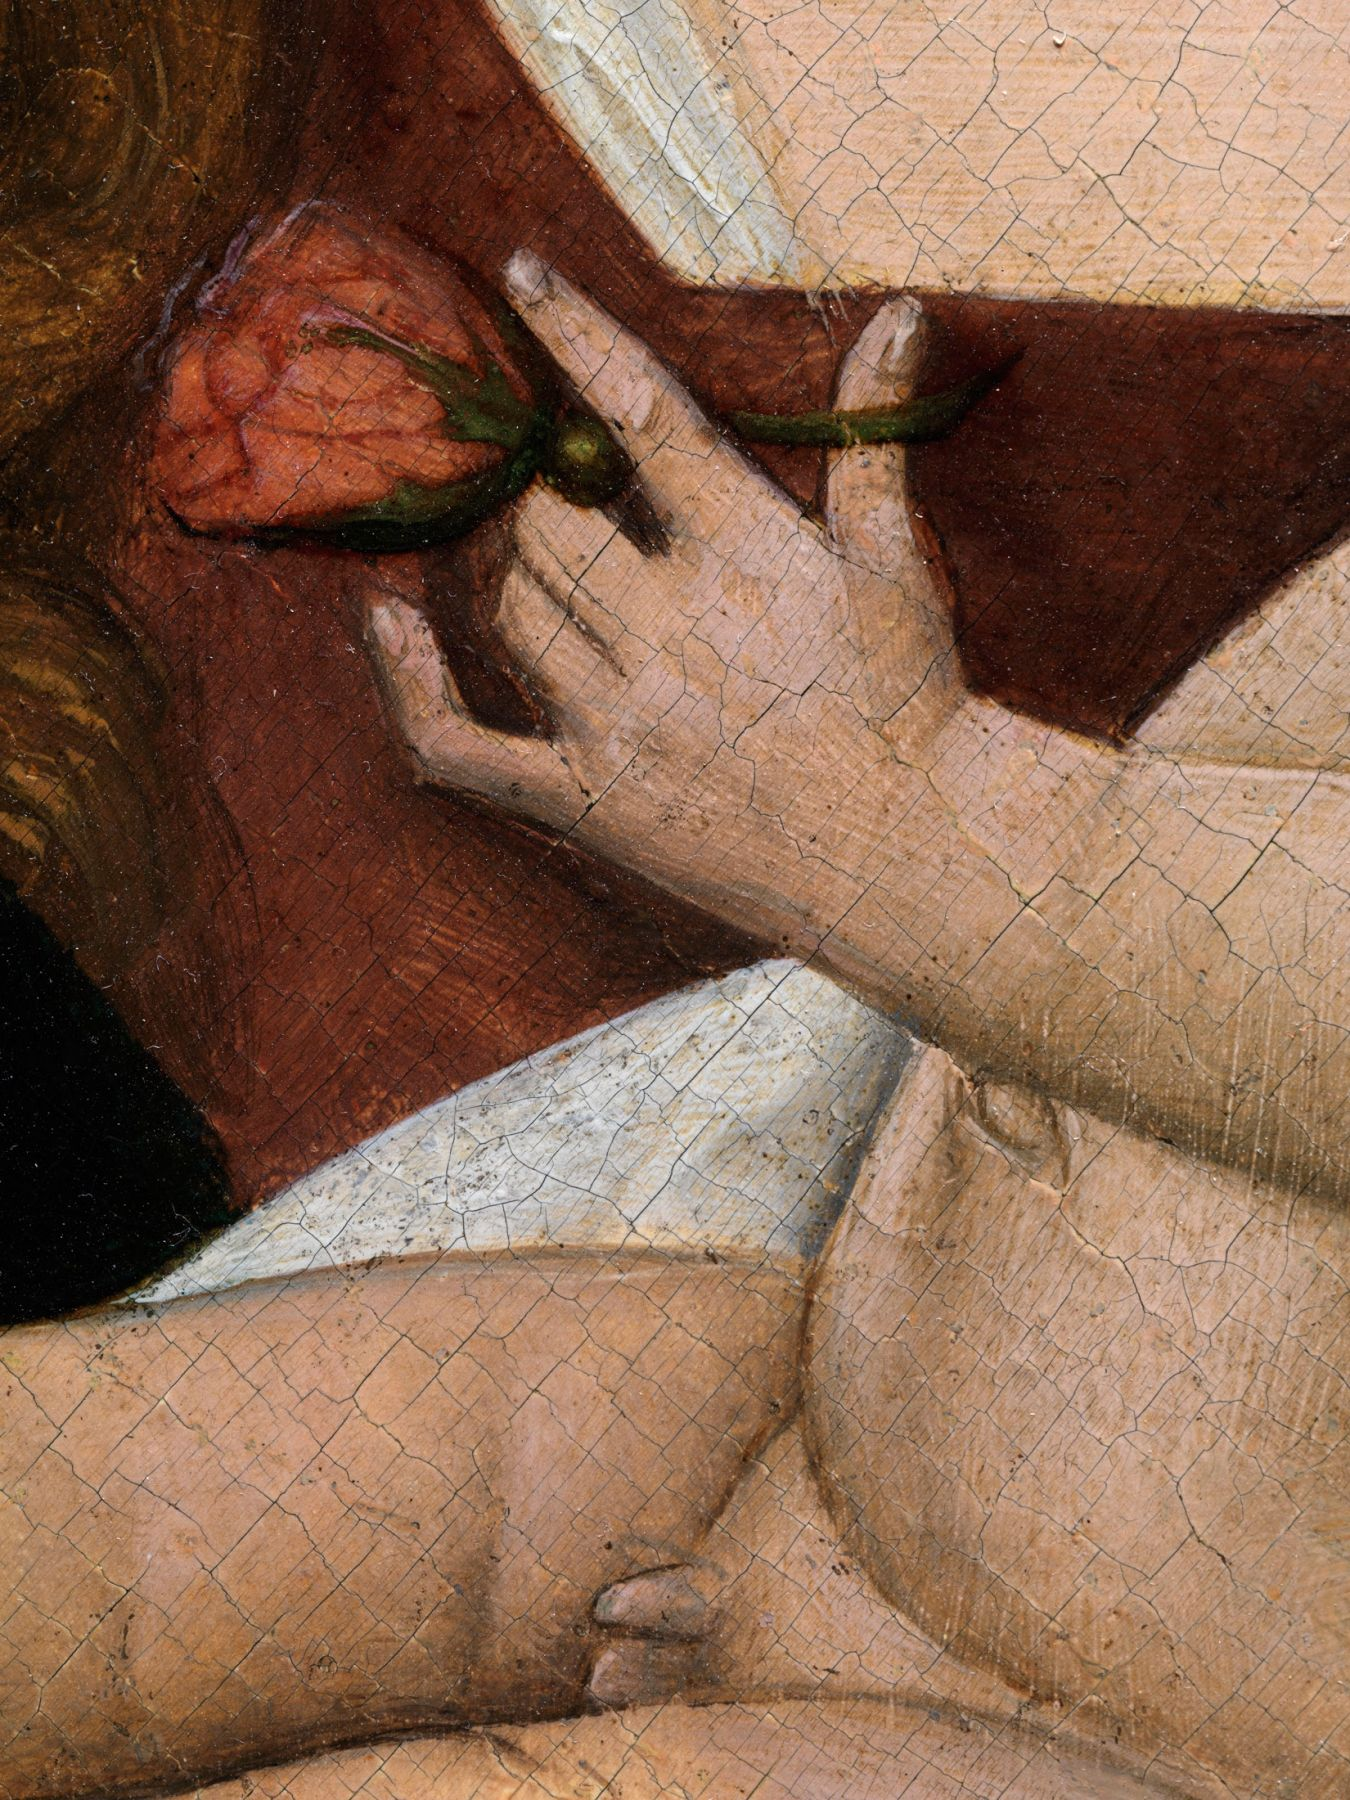 German or Southern Netherlandish Master, The Virgin and Child (detail)